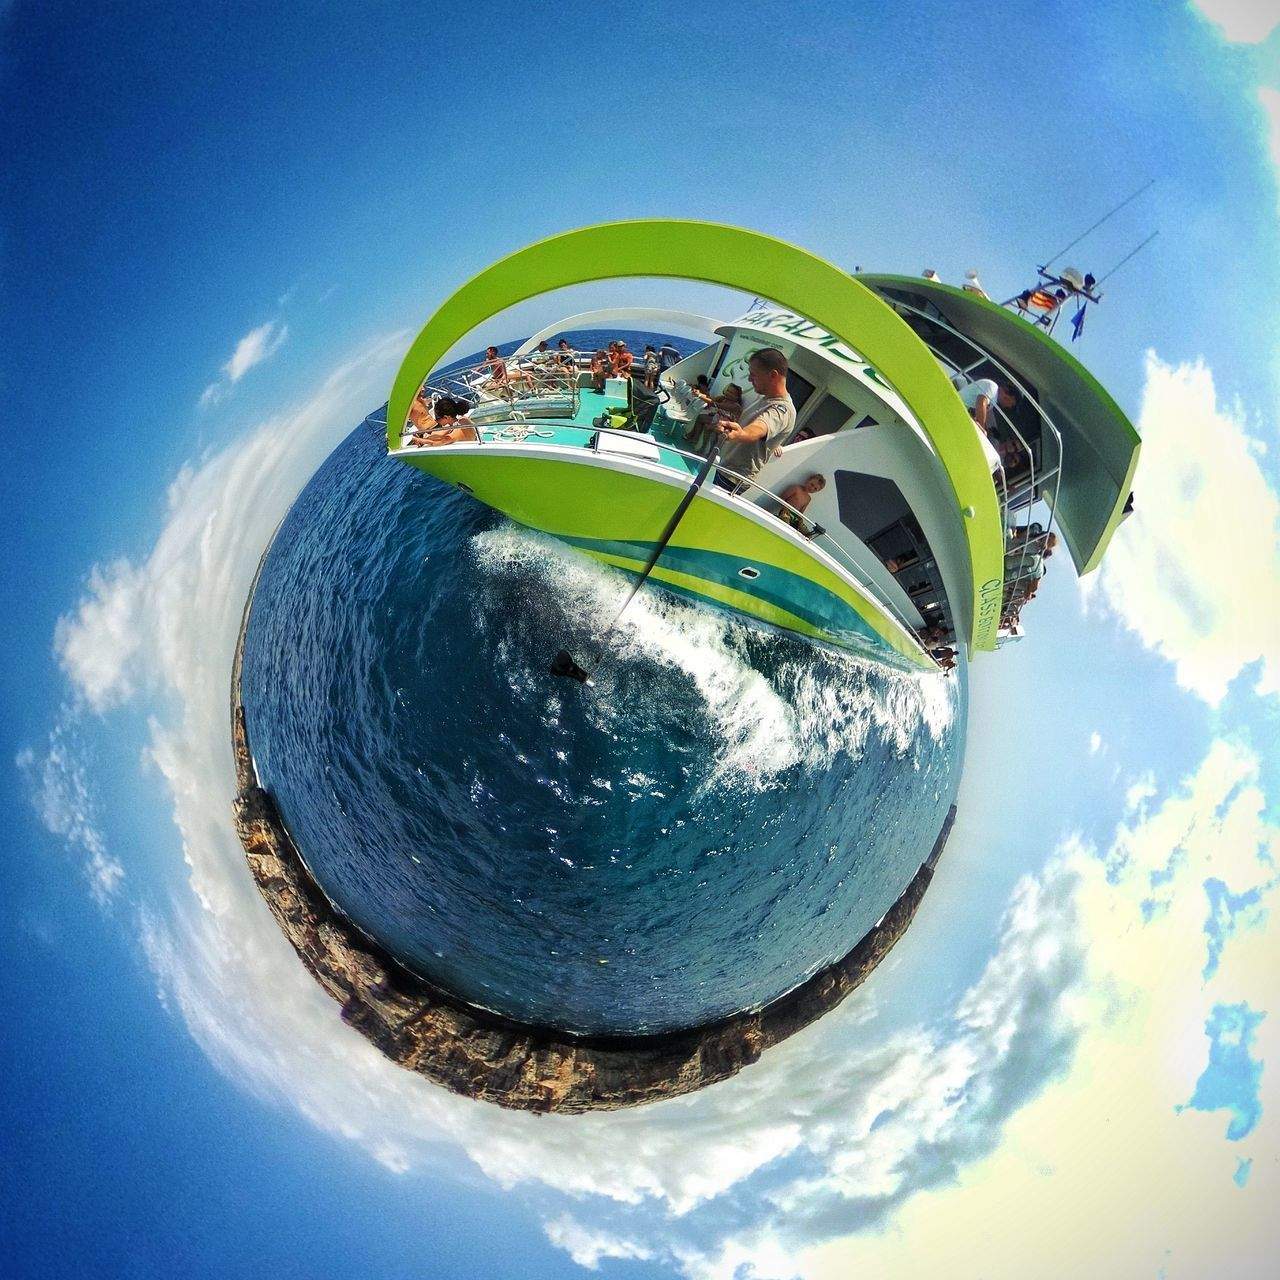 sky, fish-eye lens, cloud - sky, day, outdoors, blue, leisure activity, nature, water, no people